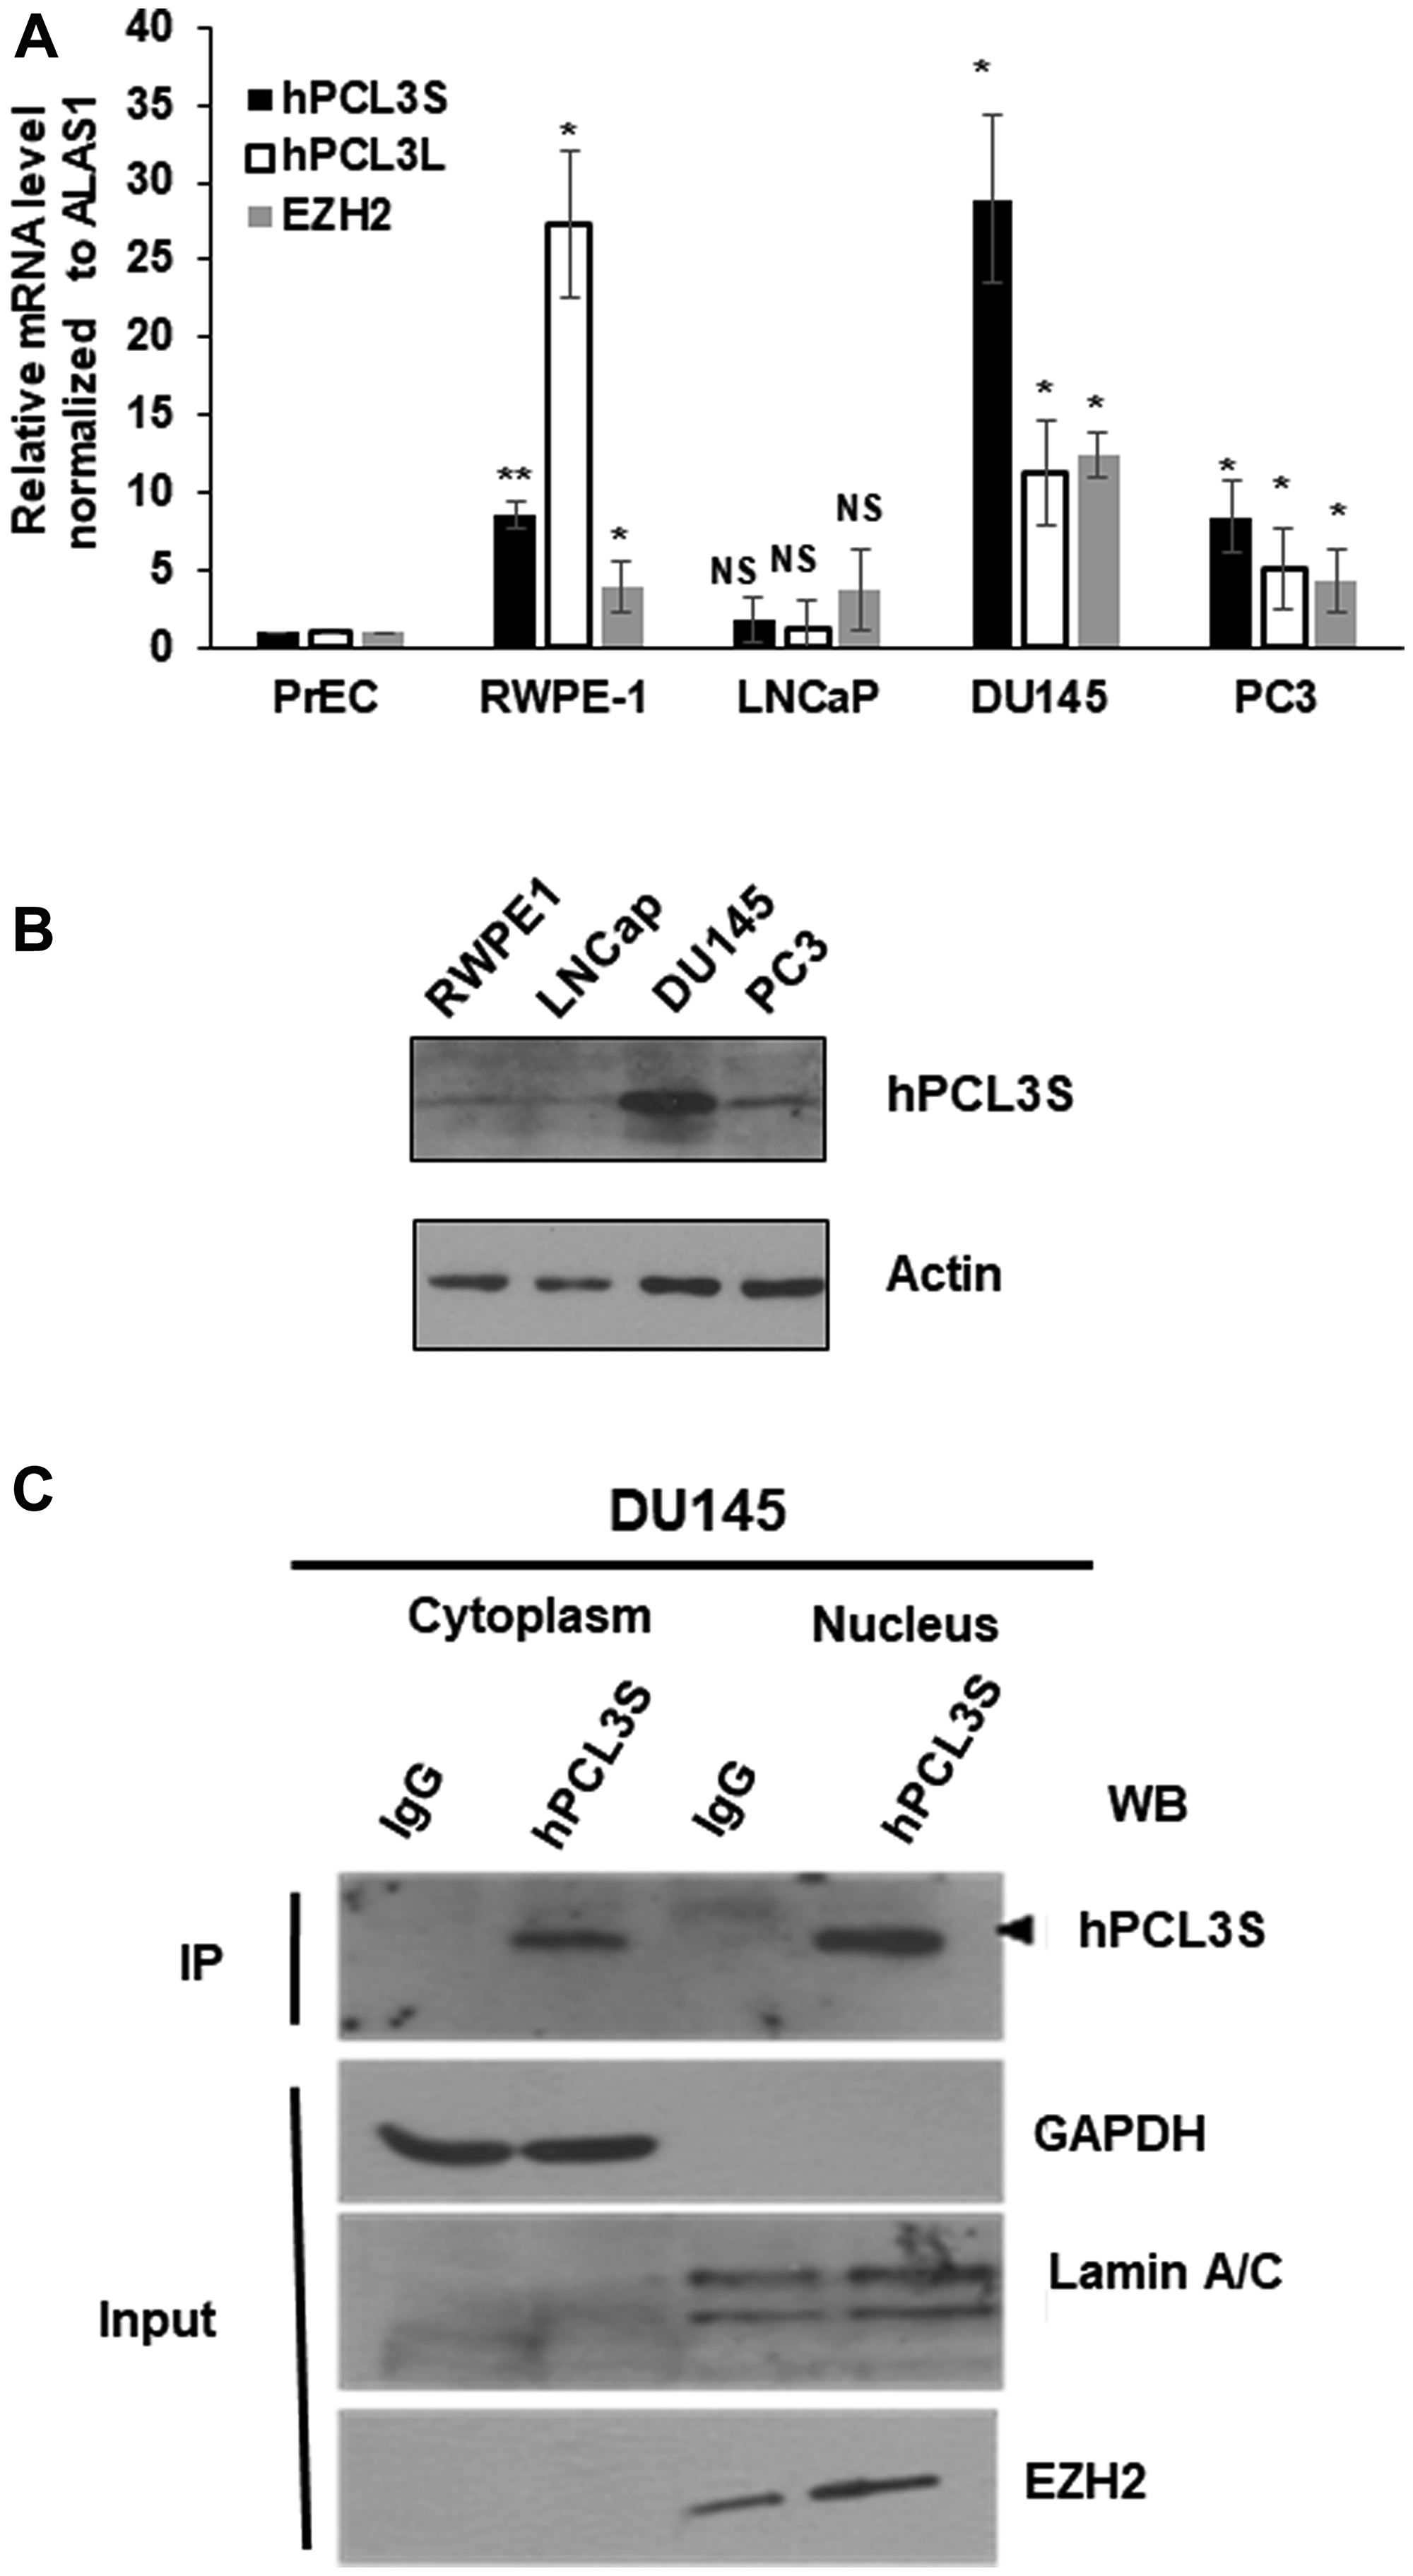 hPCL3S expression is specifically elevated in androgeno-negative prostate cancer cells, in vitro.